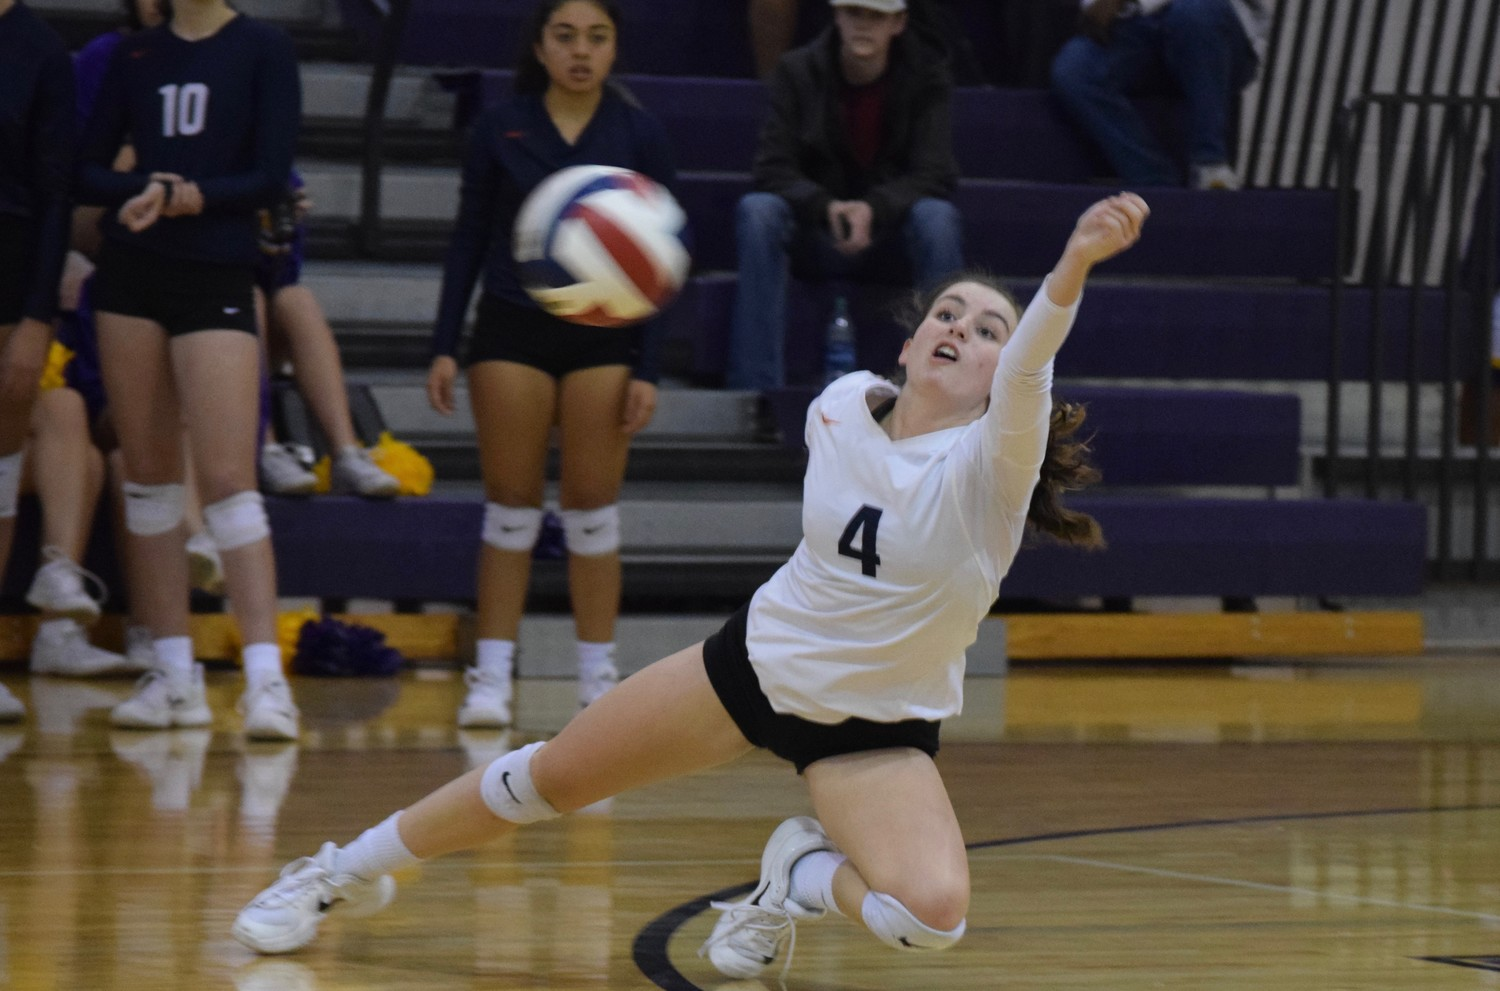 Olivia Langdon and the Lady Grizzlies lost to La Grange 3-0 in the first round of the volleyball playoff Tuesday night. It was the first ever postseason appearance for a team from Glenn.